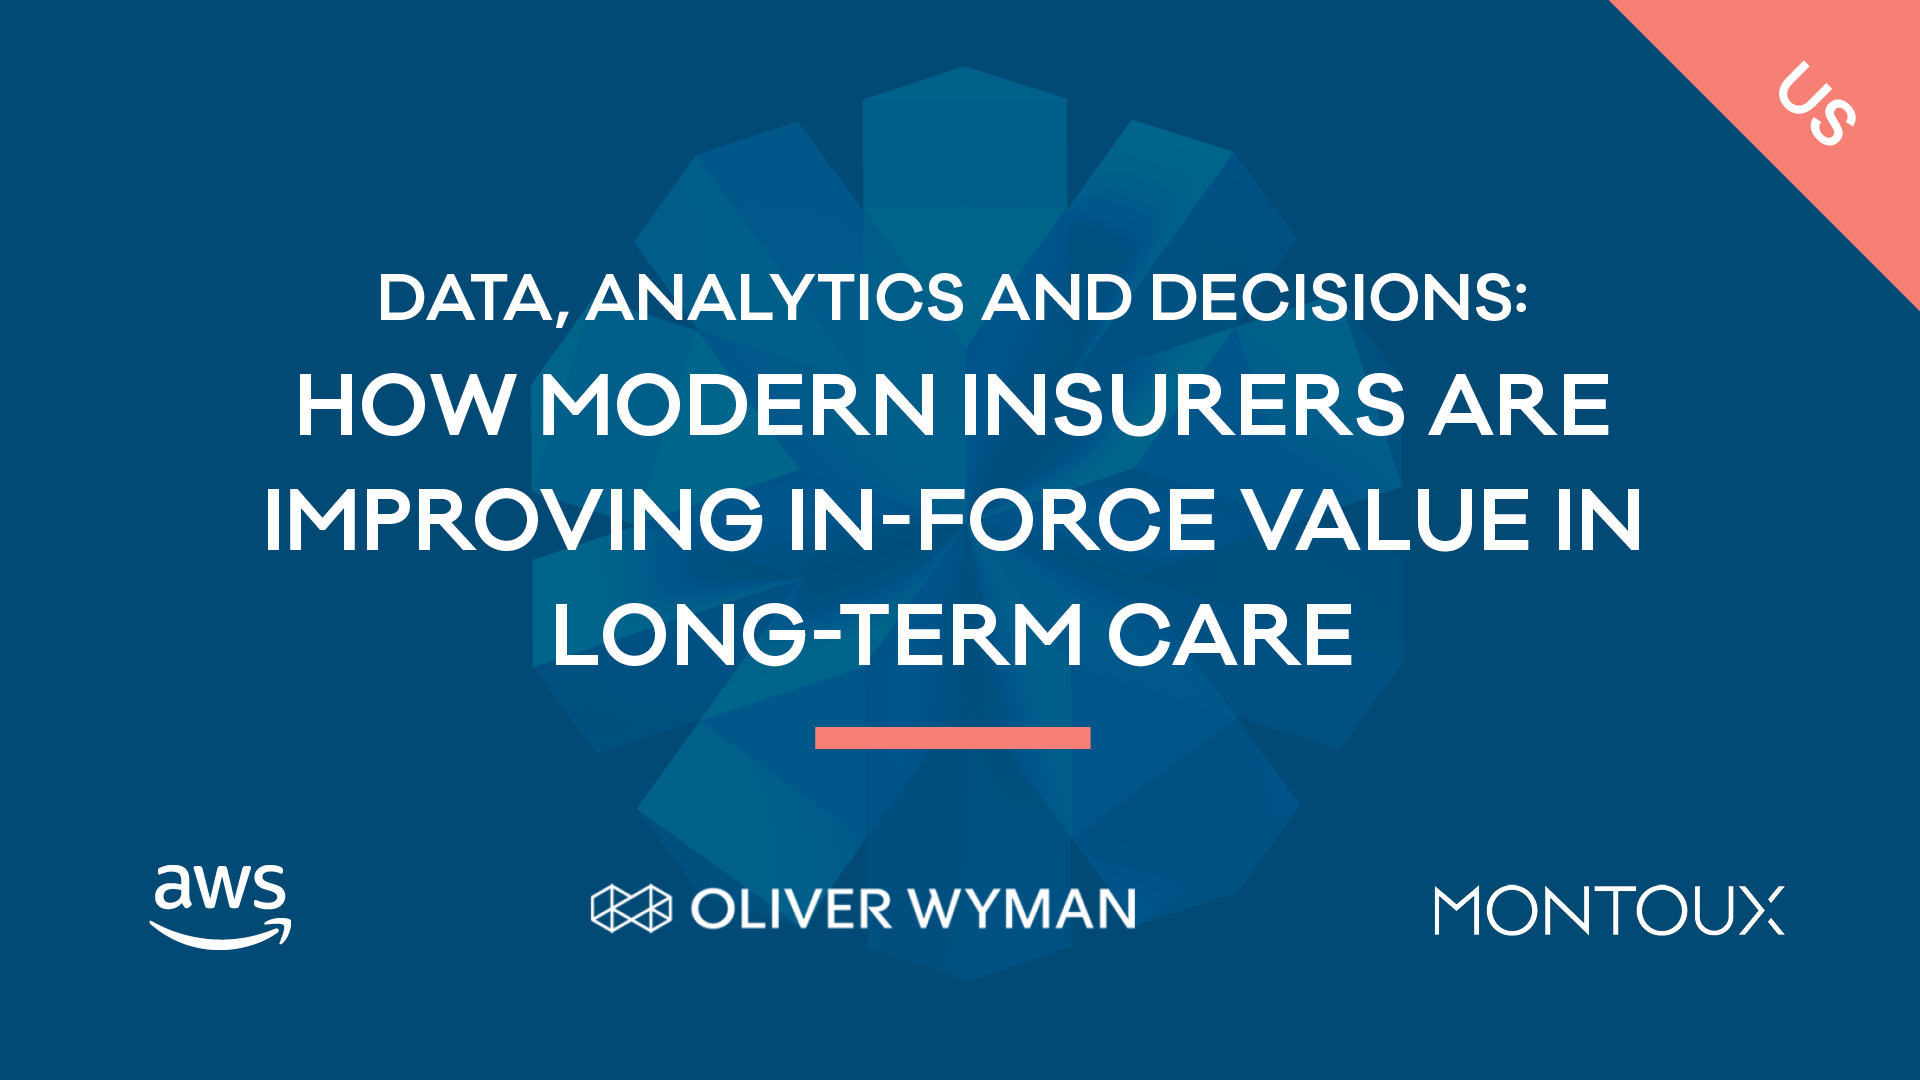 Data, analytics and decisions:How modern insurers are improving in-force value in long-term care